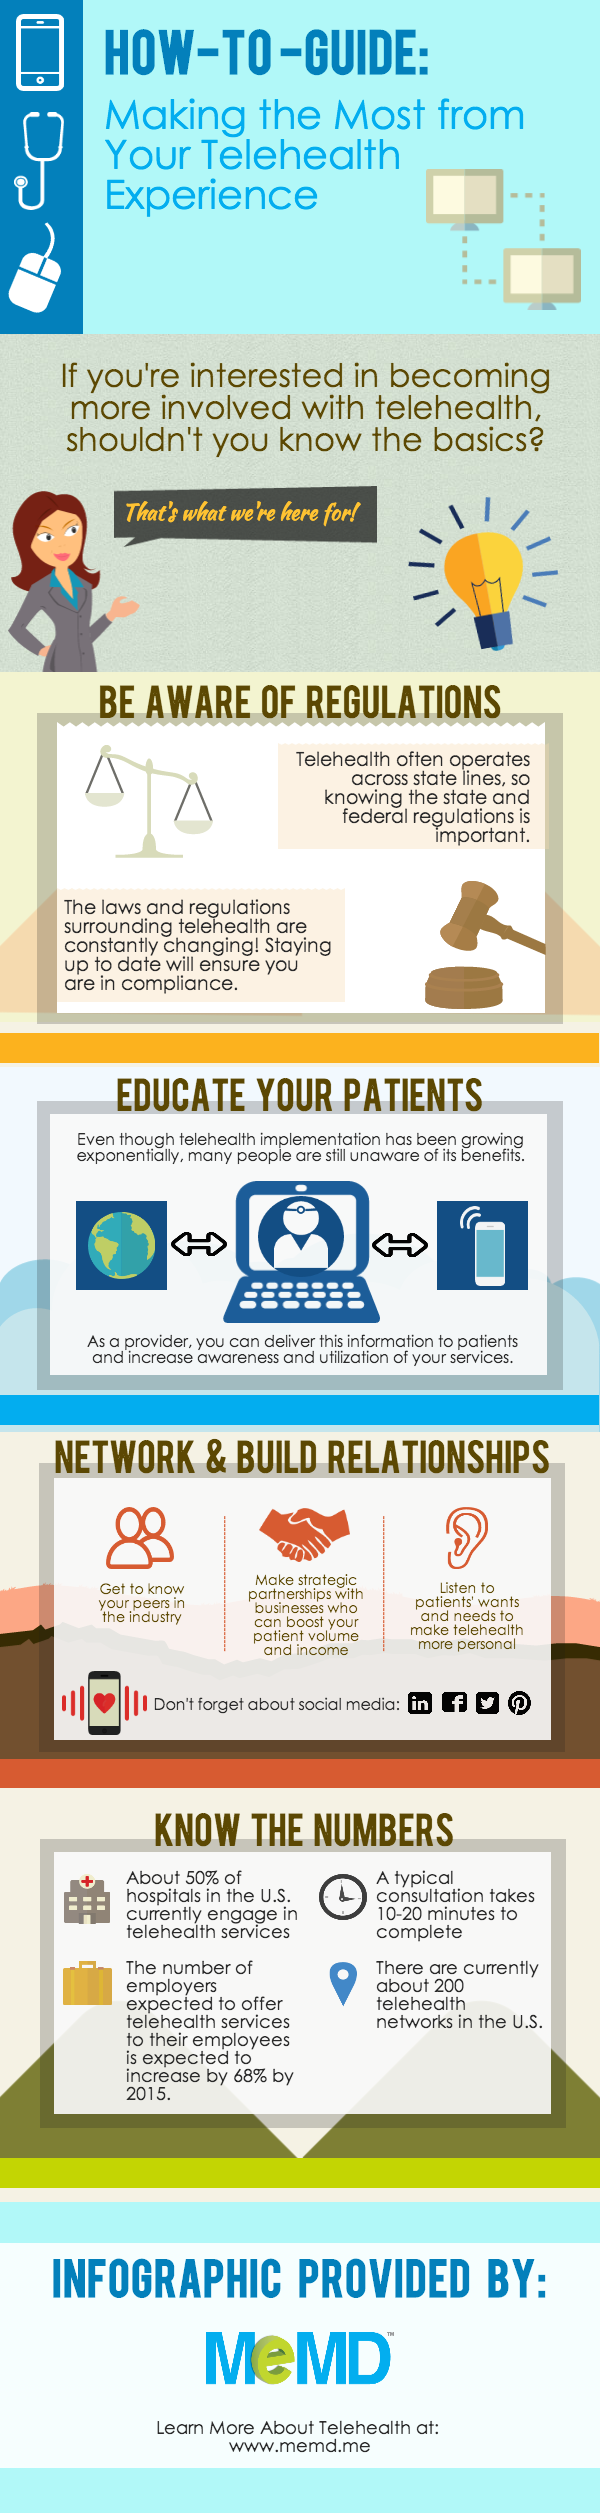 blog-infographic-get-the-most-out-of-telehealth